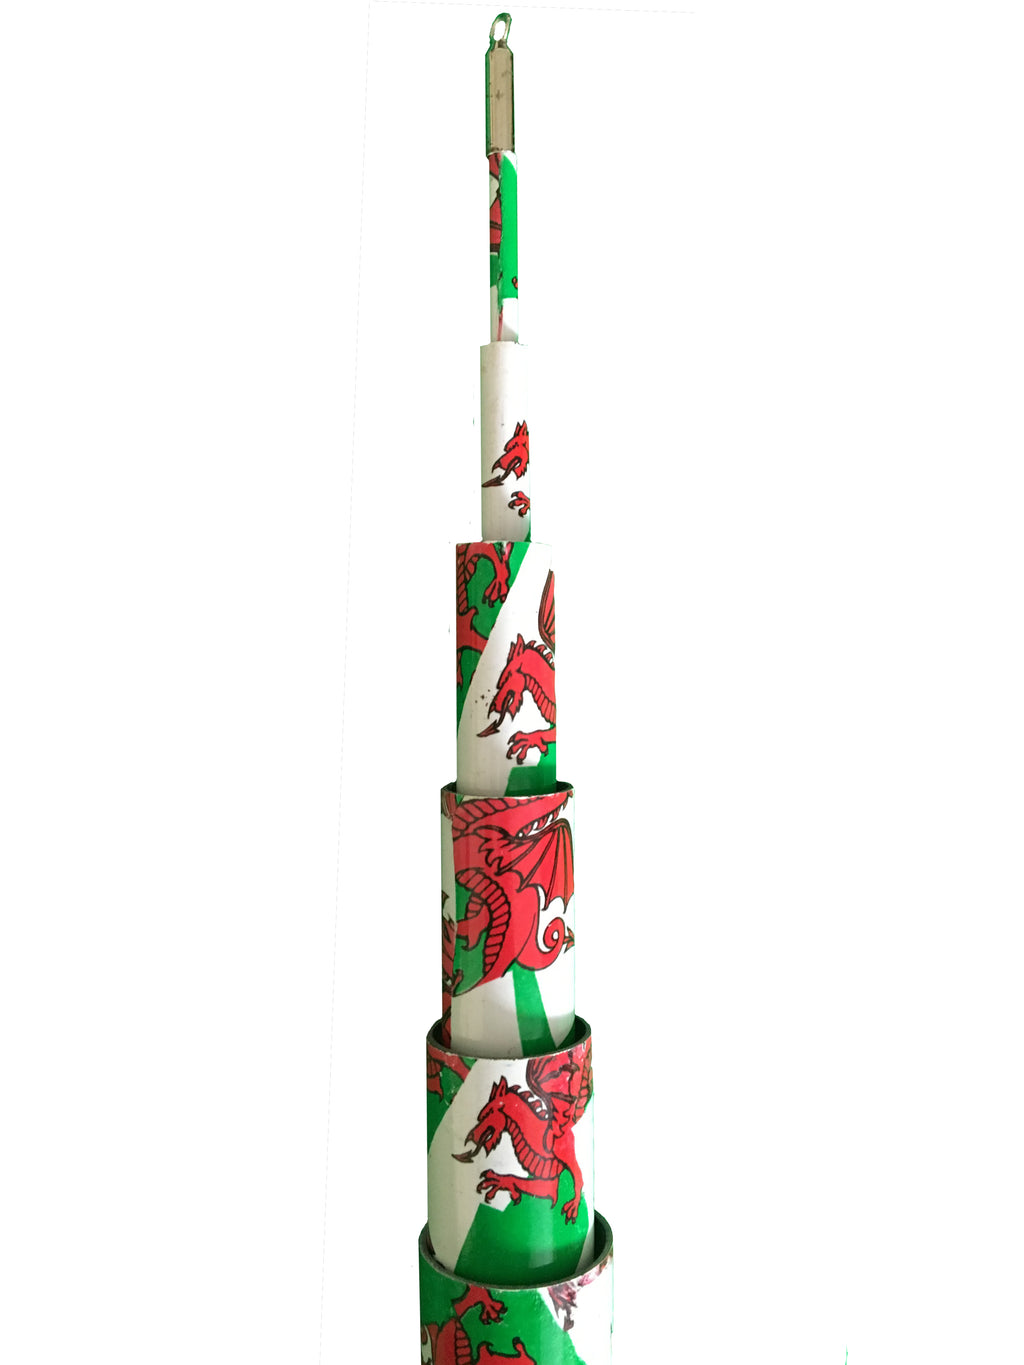 Life's a breeze Ultimate Performance Welsh Telescopic Flag Pole (6m) - Life's a breeze GB Ltd